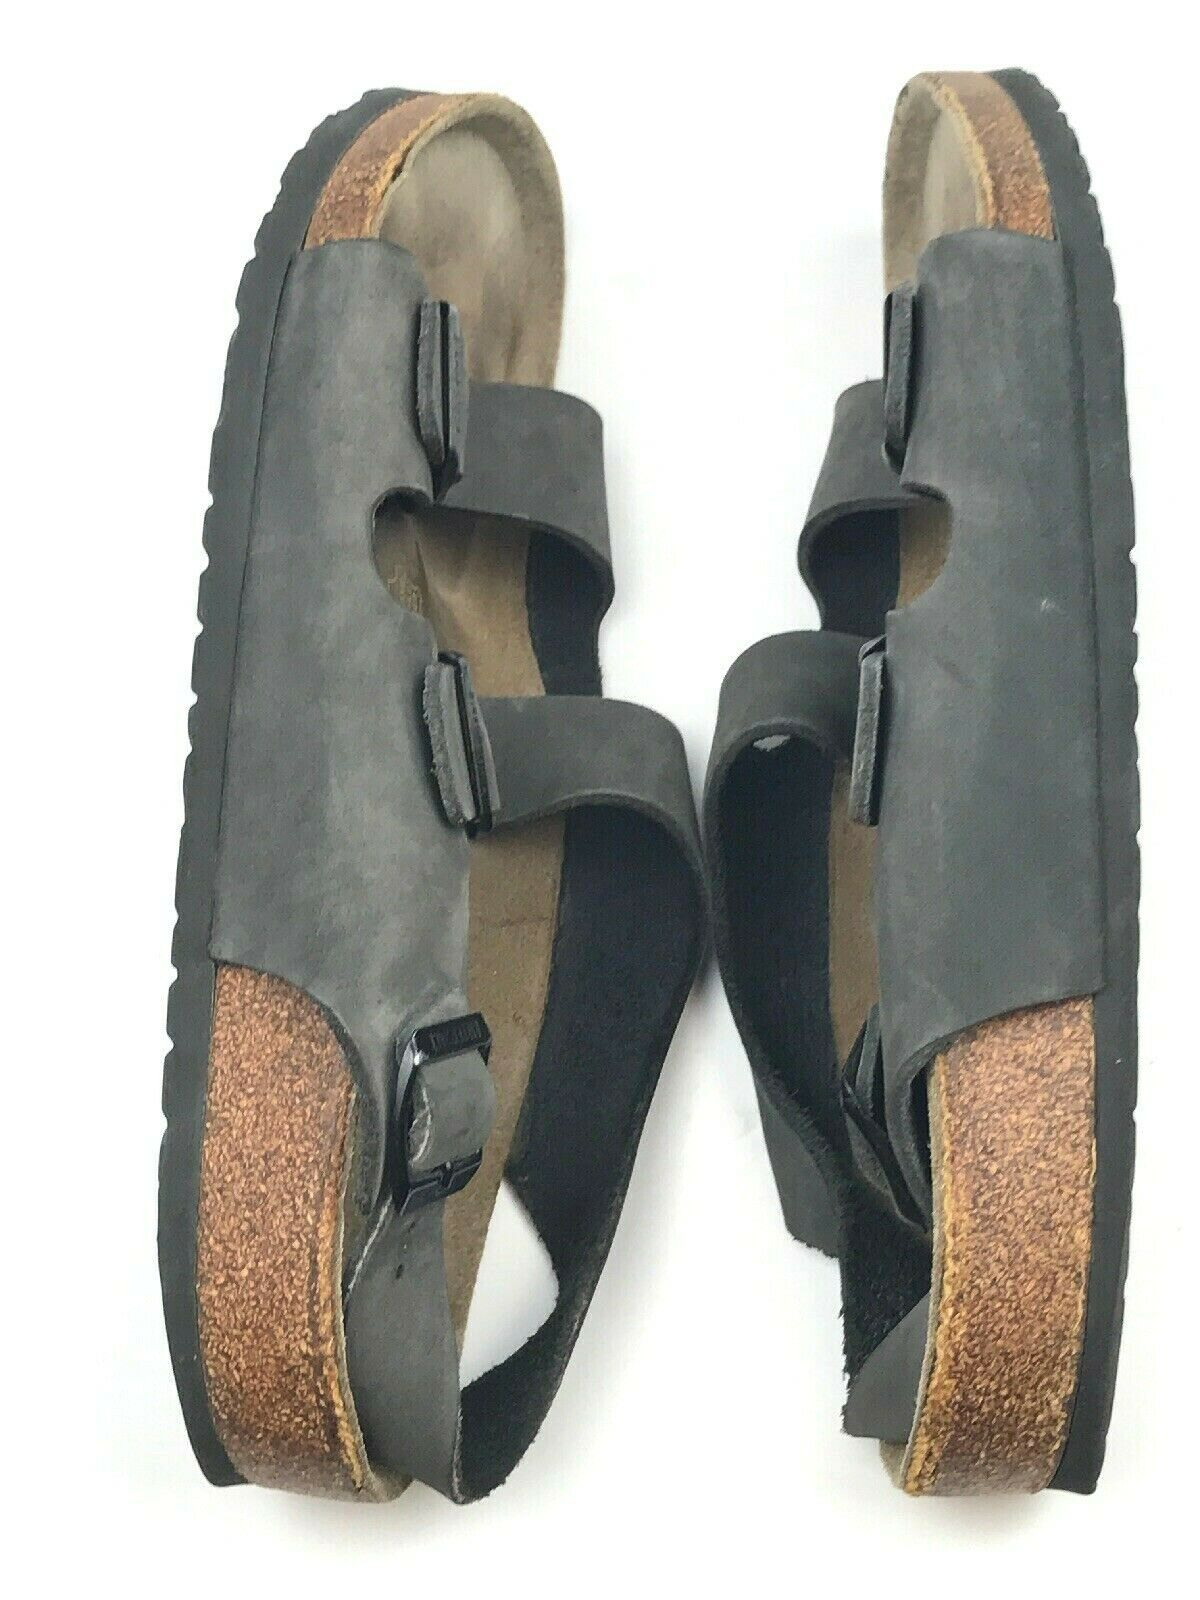 Birkenstock MILANO Gray Suede 2 Strap with Back Strap Sandals Size 44 EU or 11 M